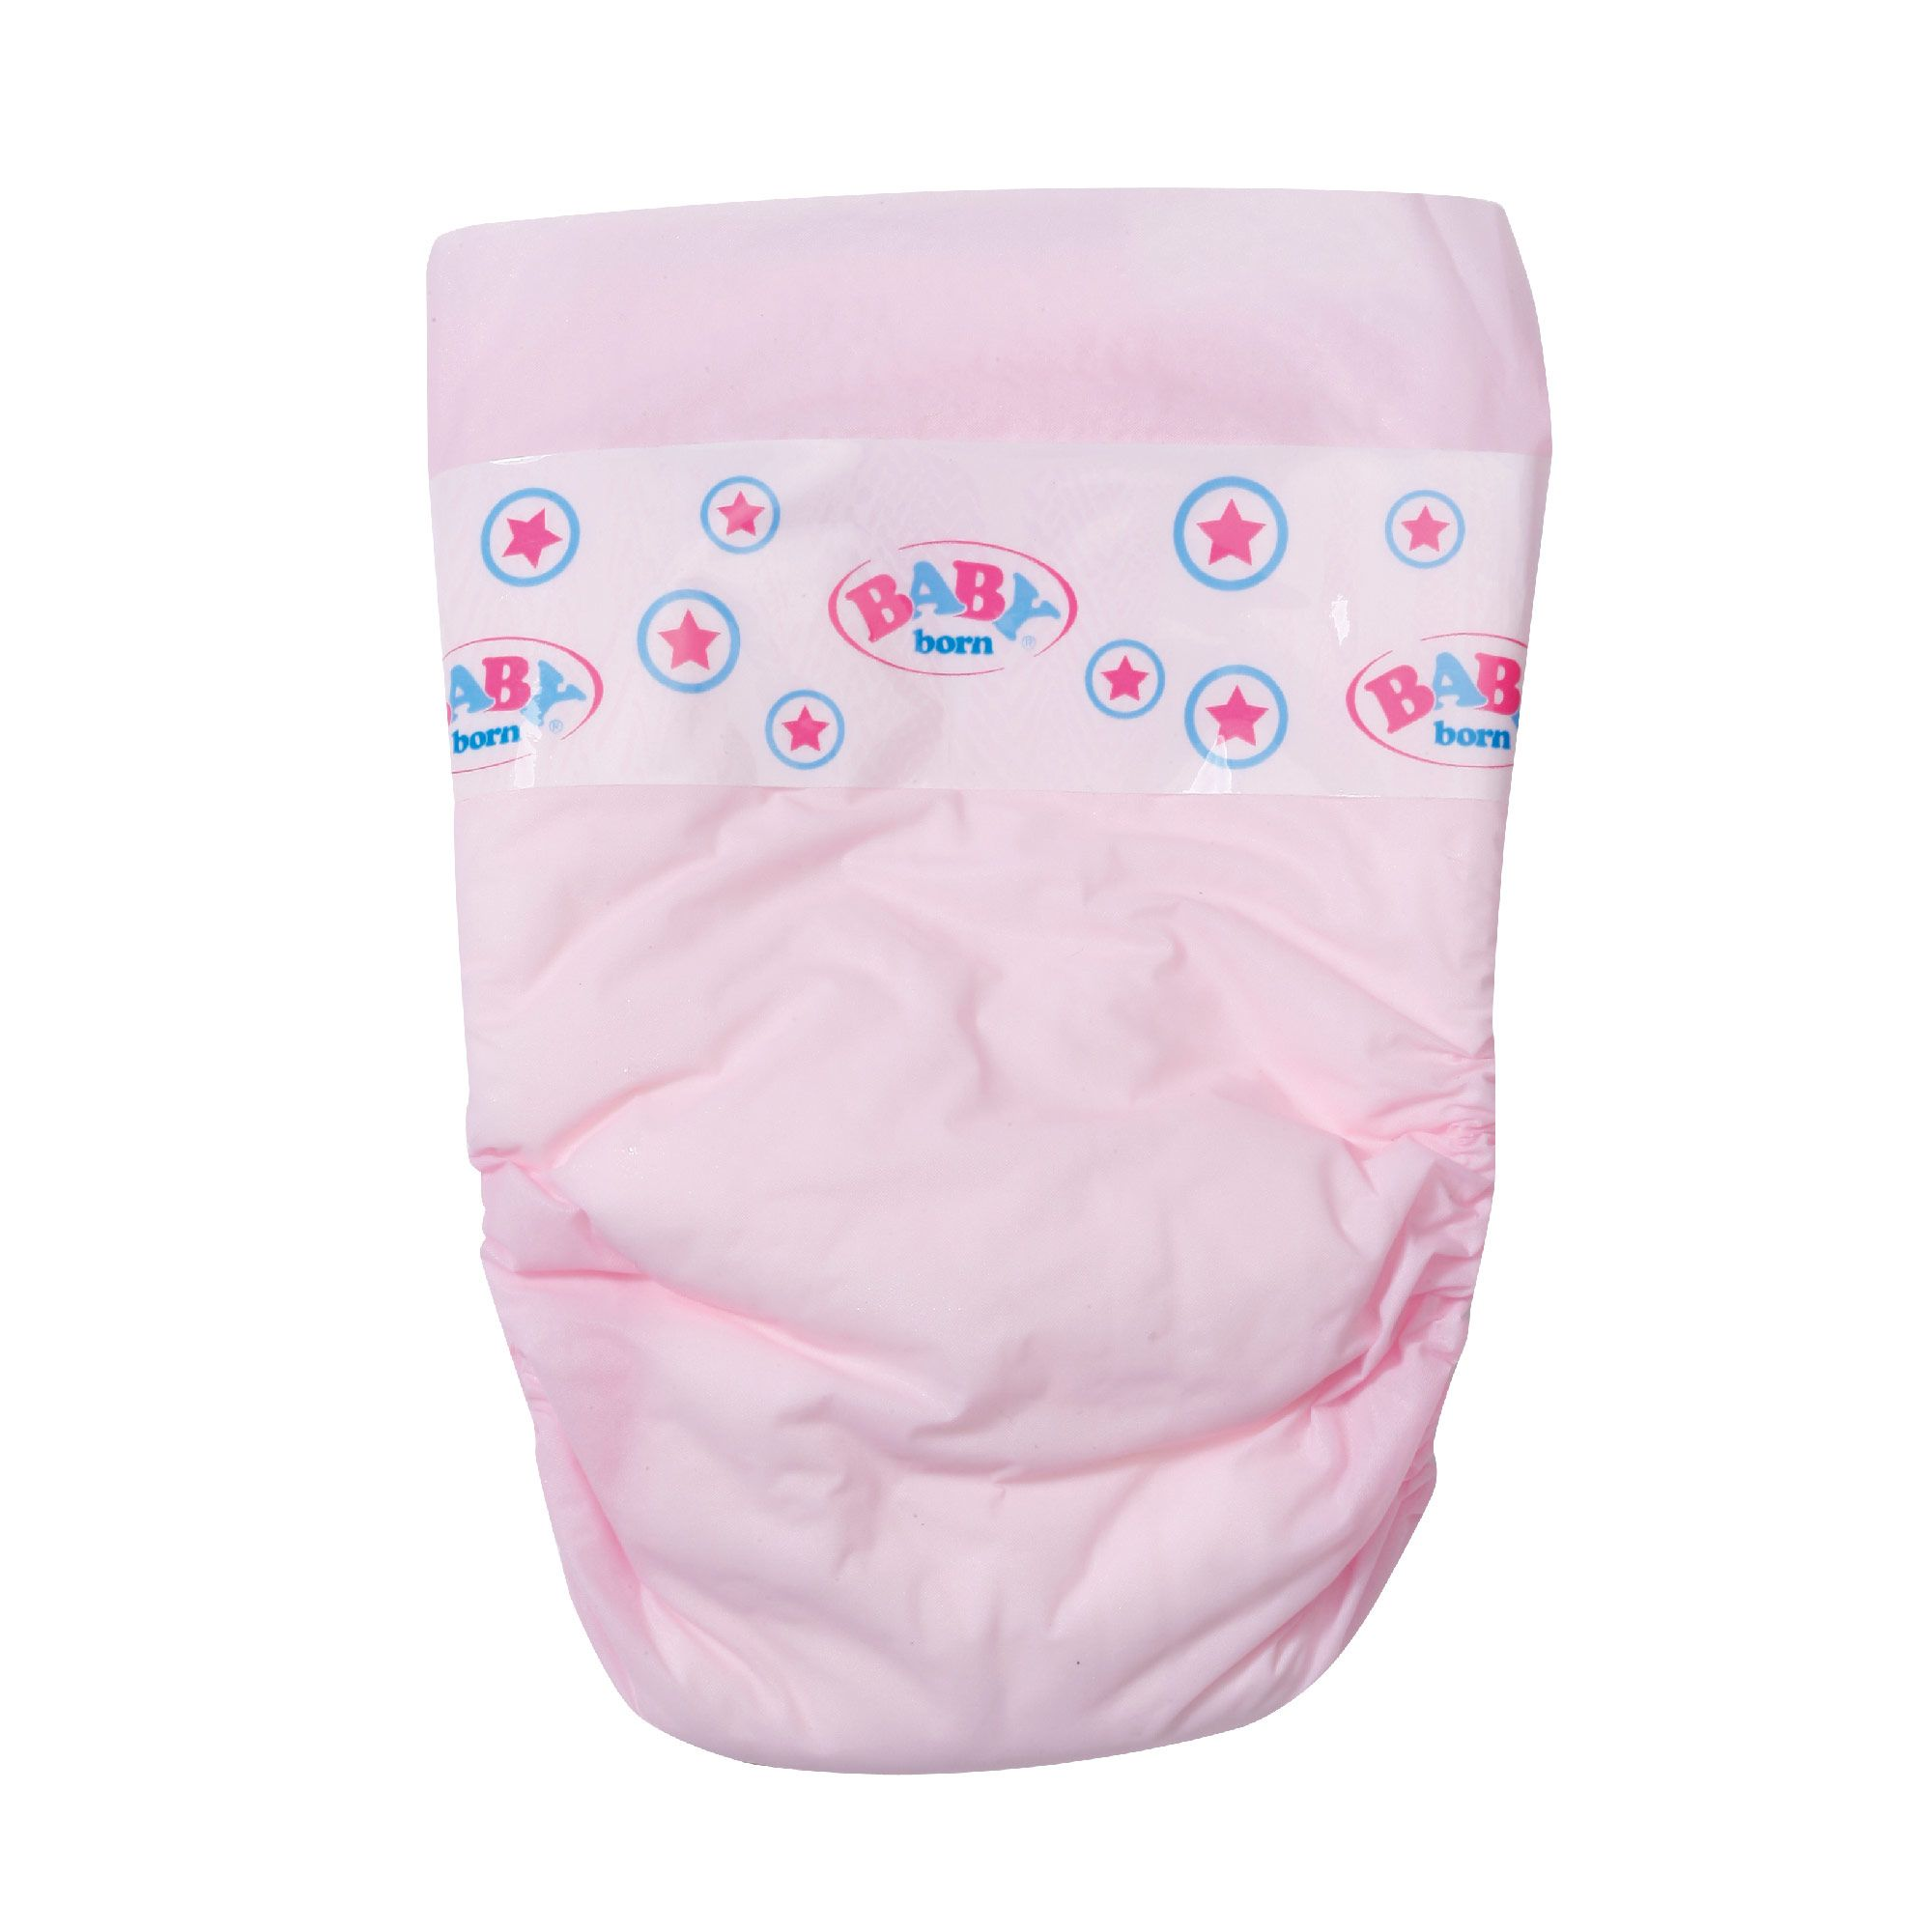 baby born nappies 5pack